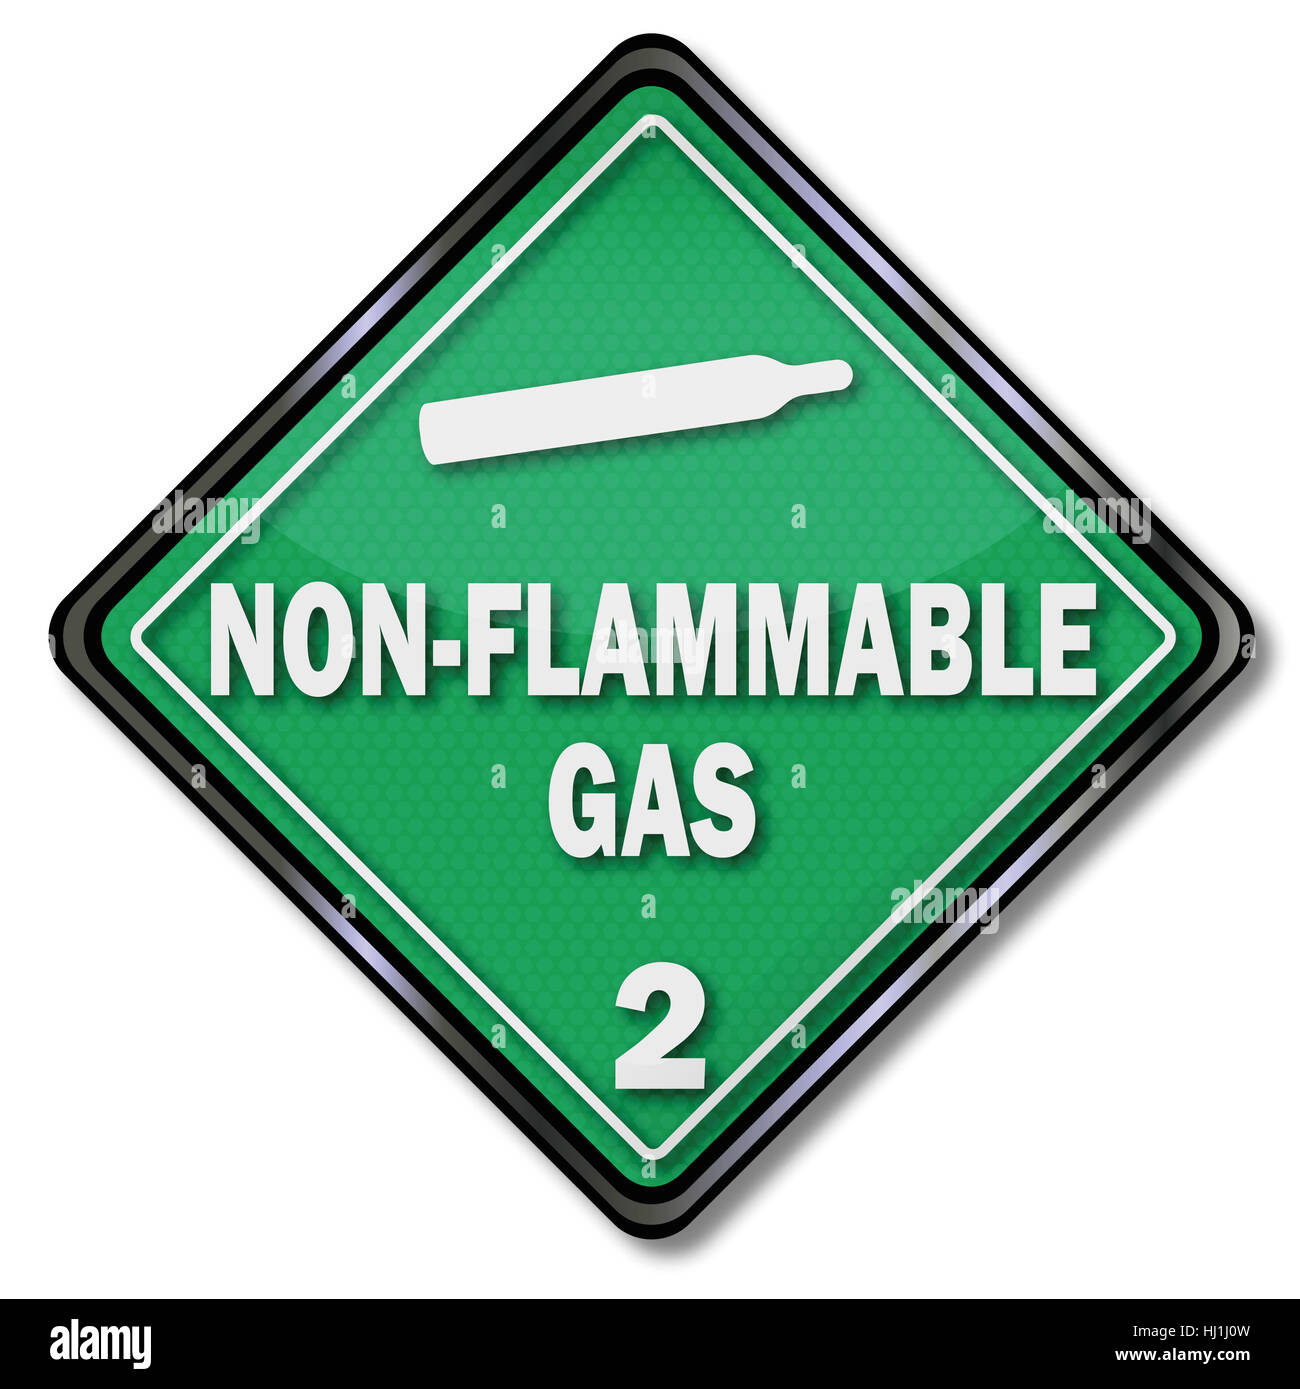 shield non-flammmable gas - Stock Image